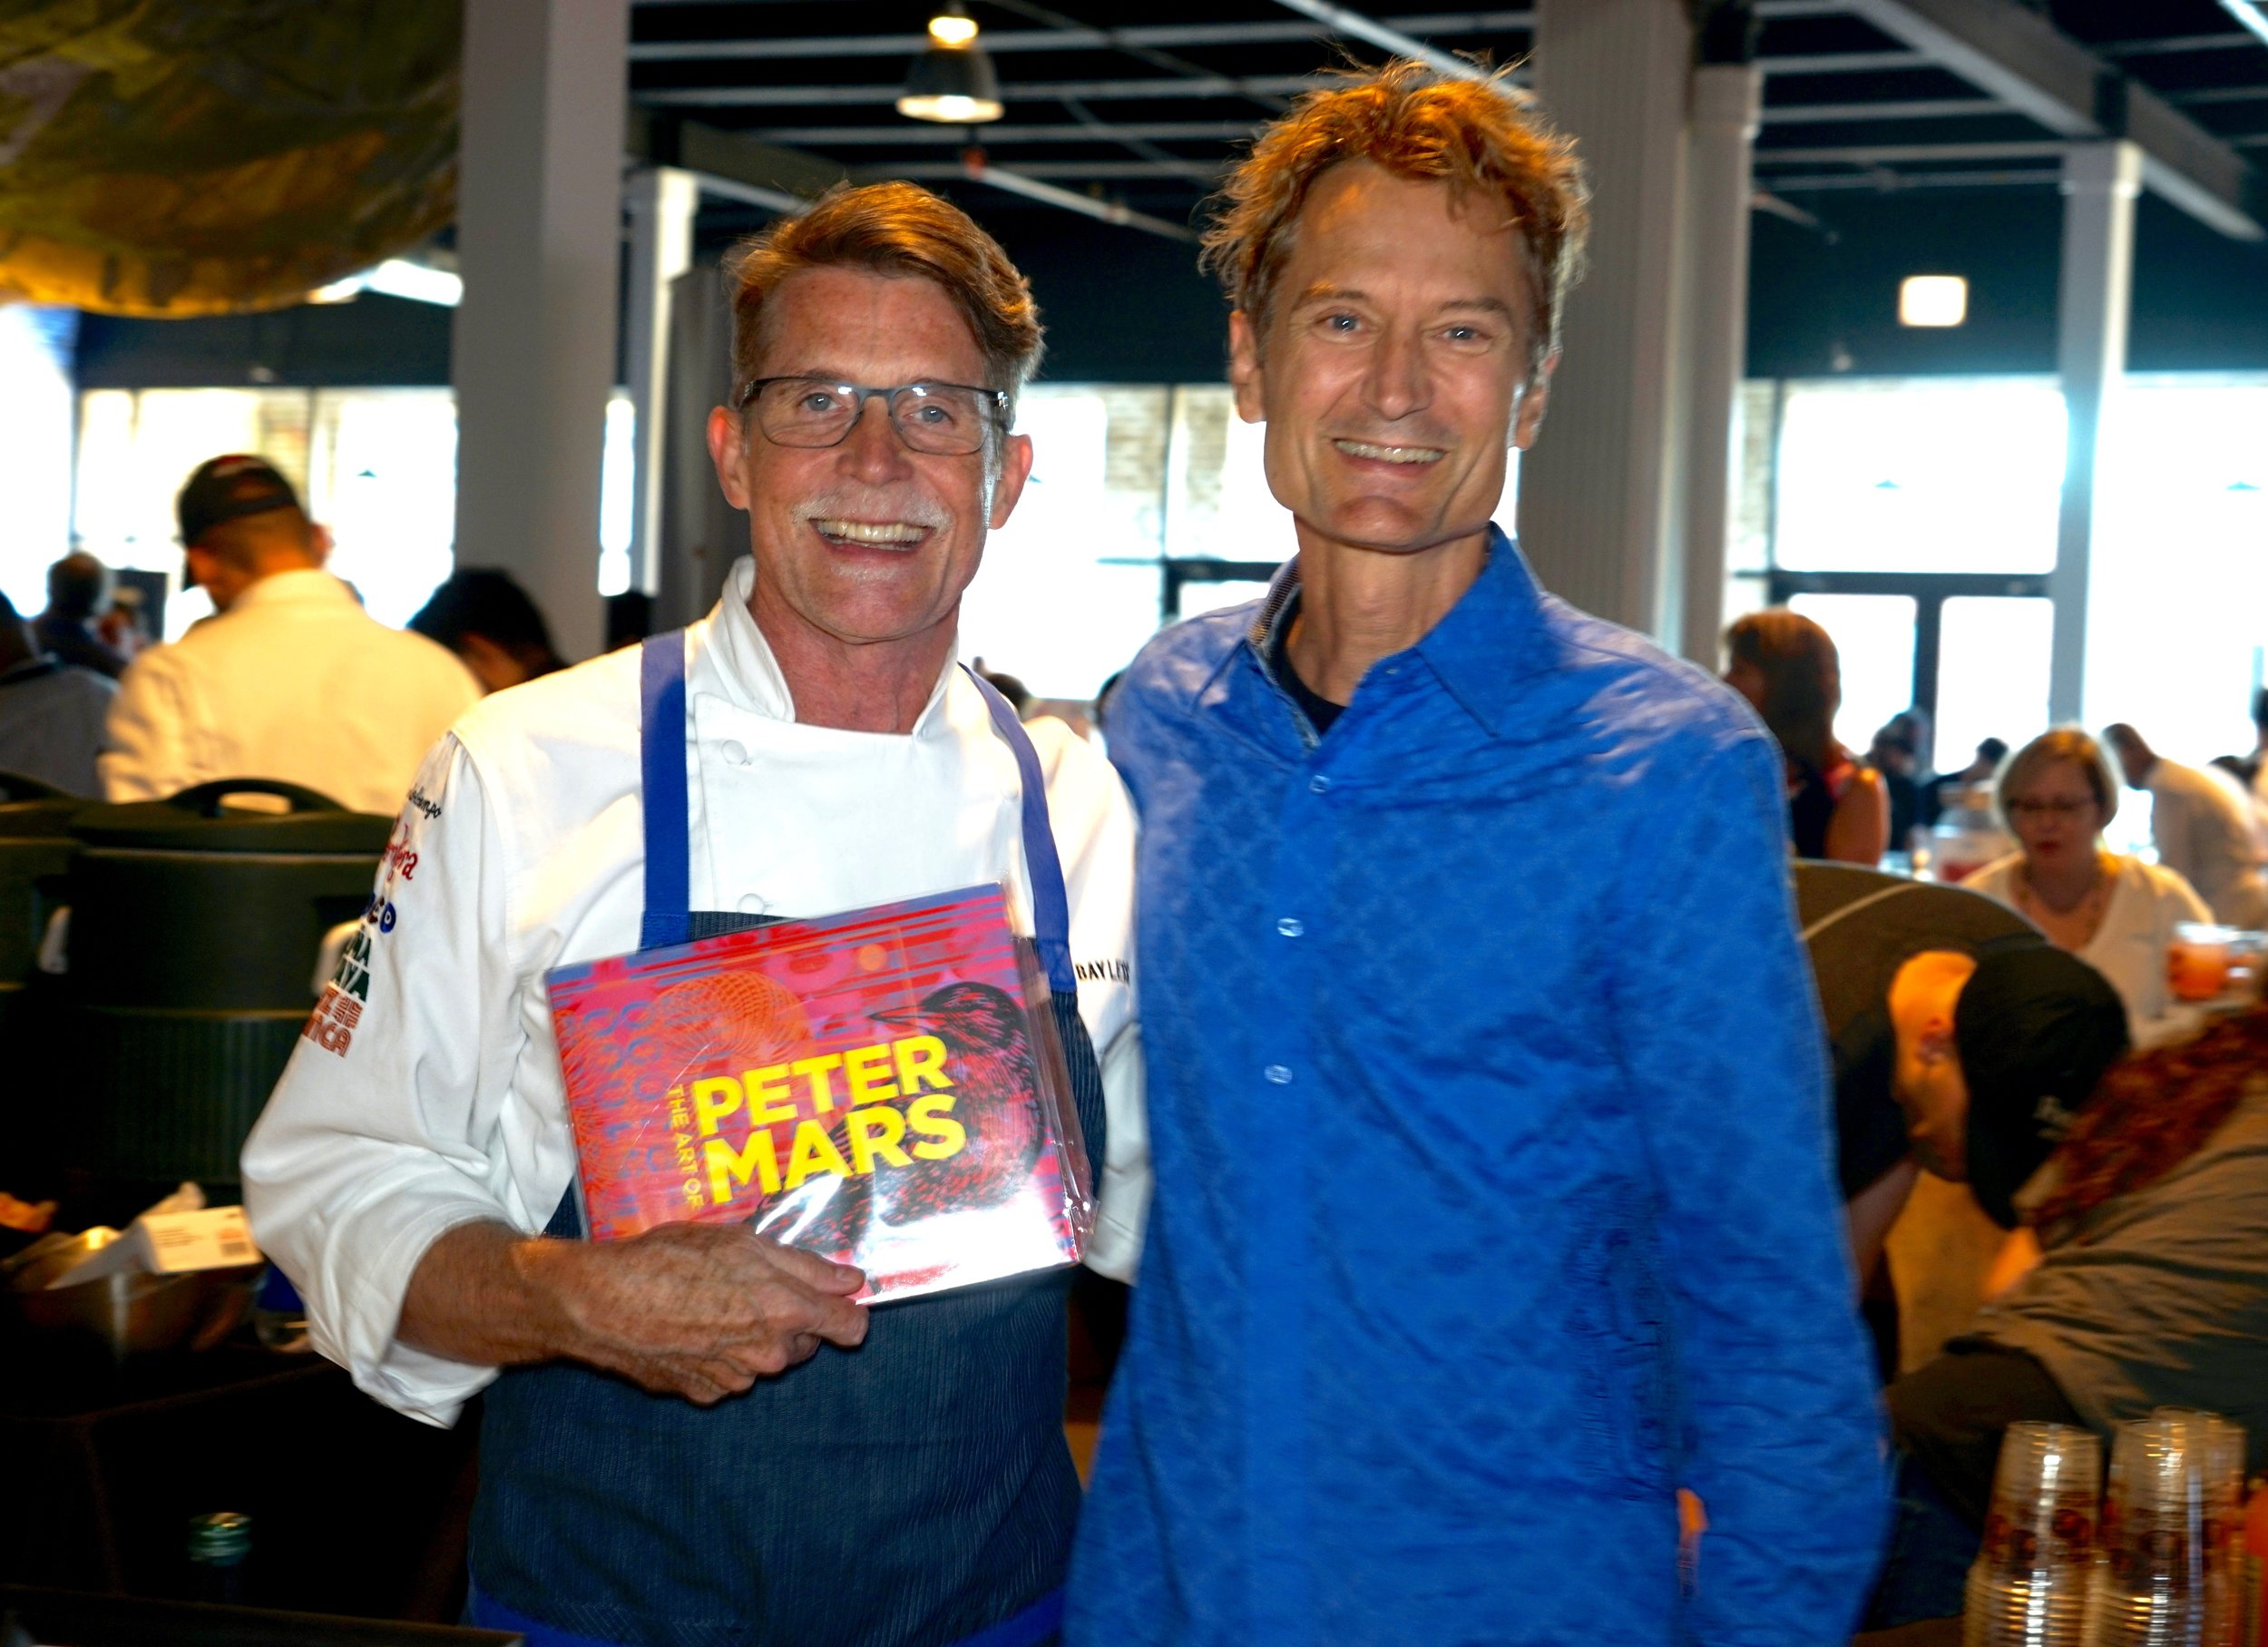 peter-mars-and-rick-bayless-chef-frontera-grill-xoco.jpg